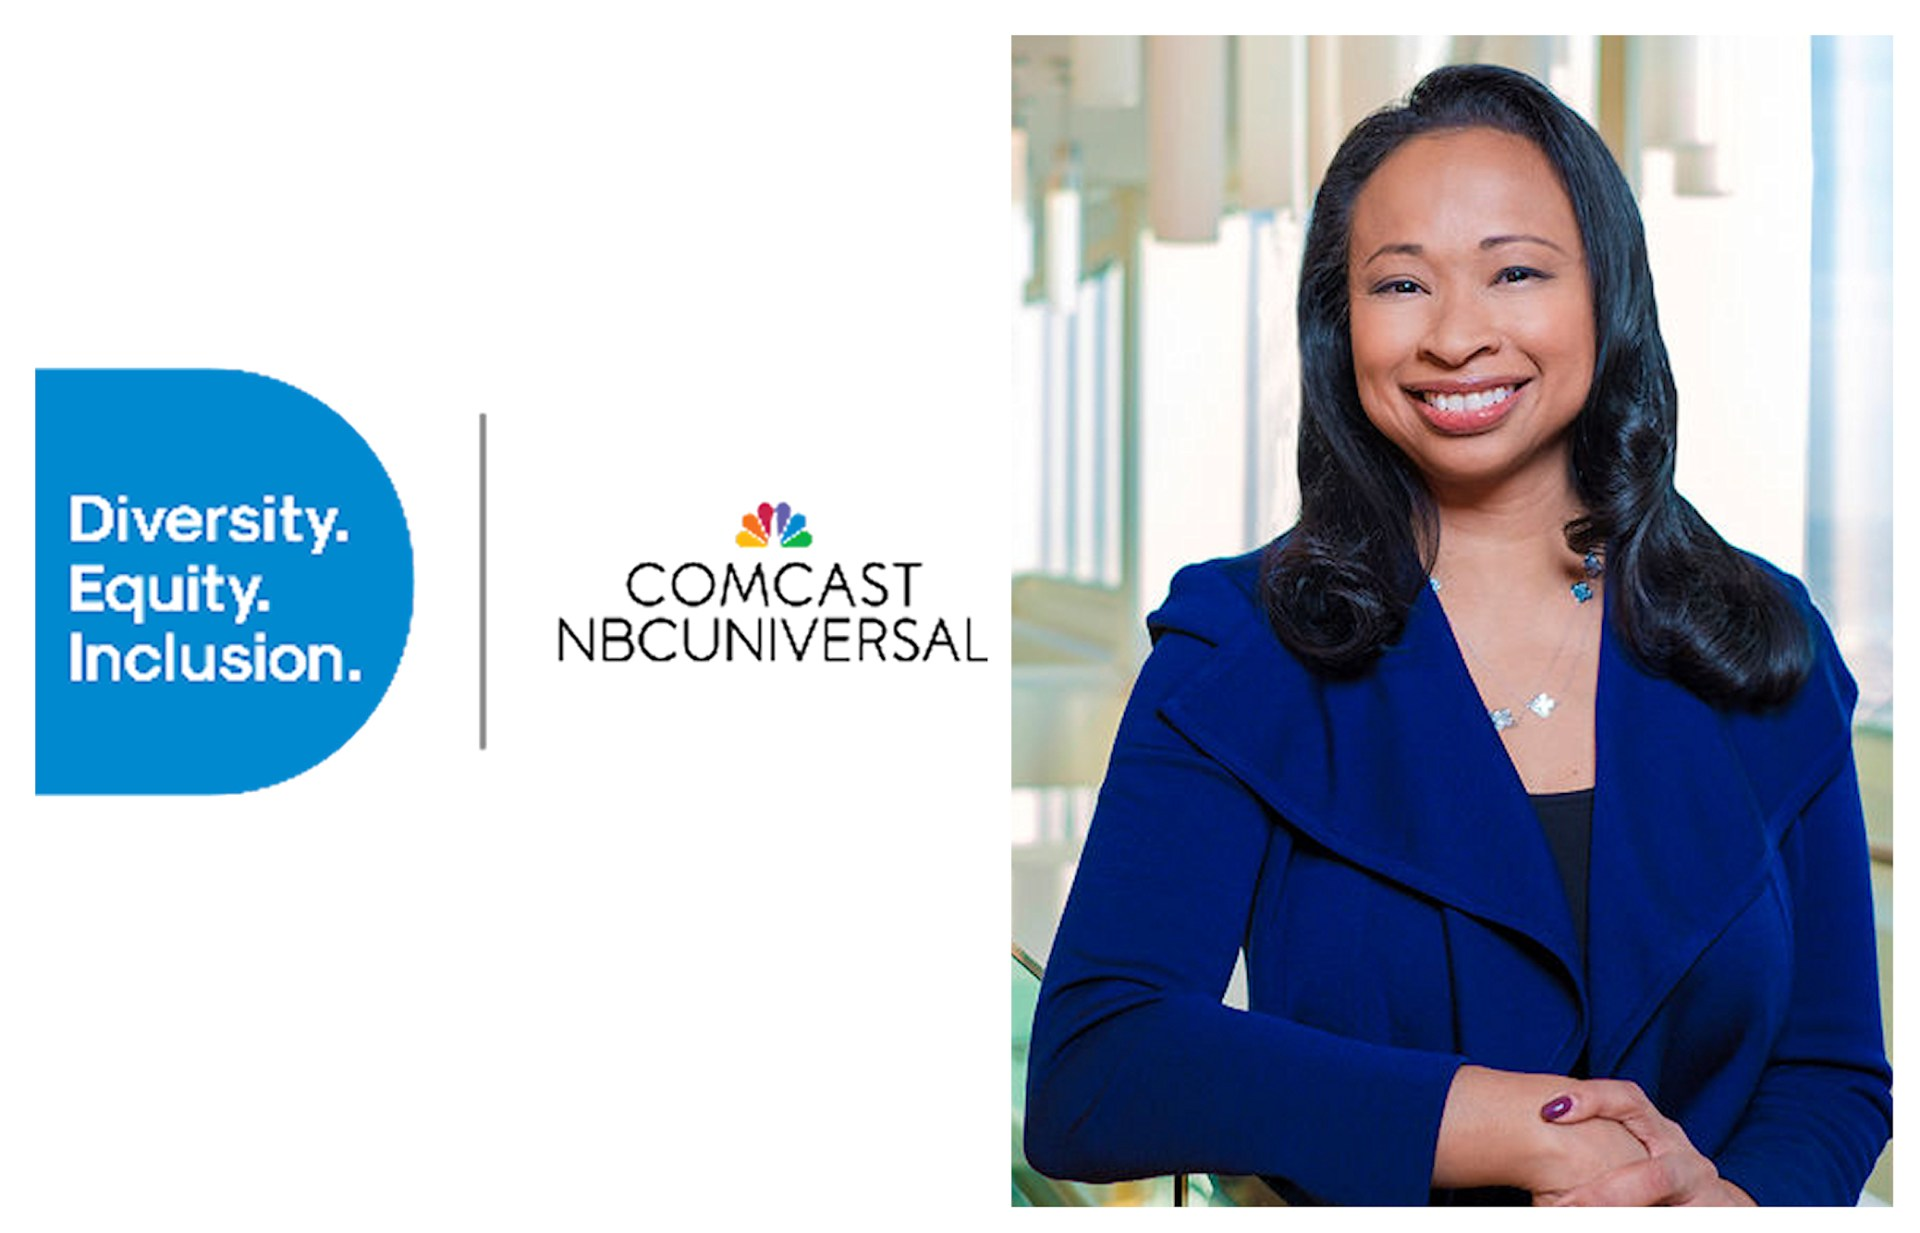 Dalila Wilson-Scott, Executive Vice President and Chief Diversity Officer, Executive Vice President and Chief Diversity Officer of Comcast Corporation and President of the Comcast NBCUniversal Foundation